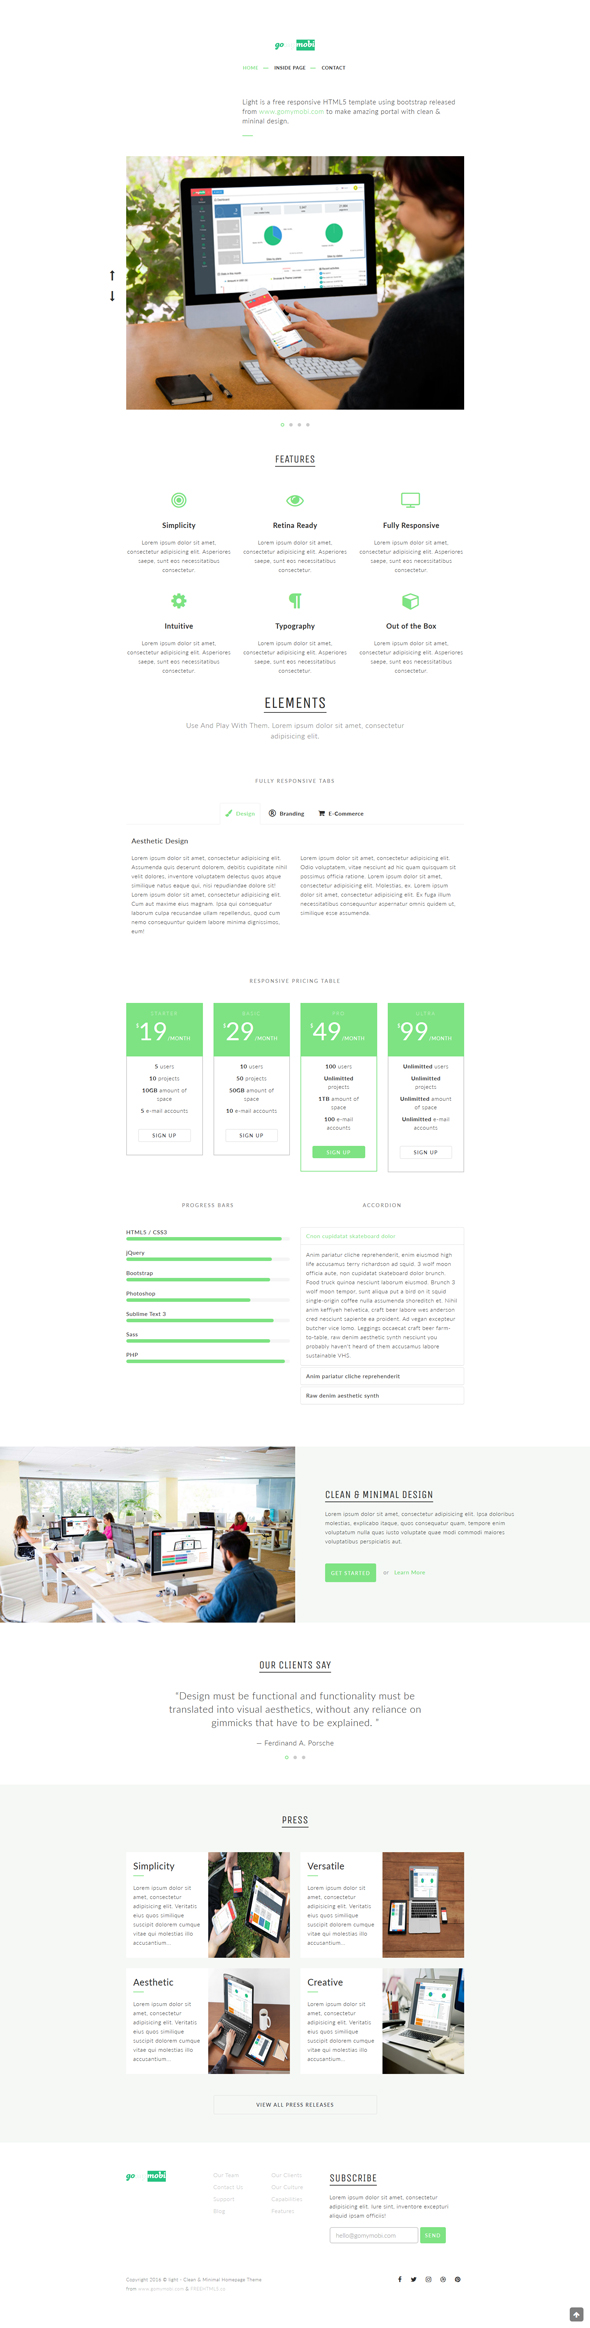 gomymobiBSB's Site Theme: Light - Clean Homepage - 2